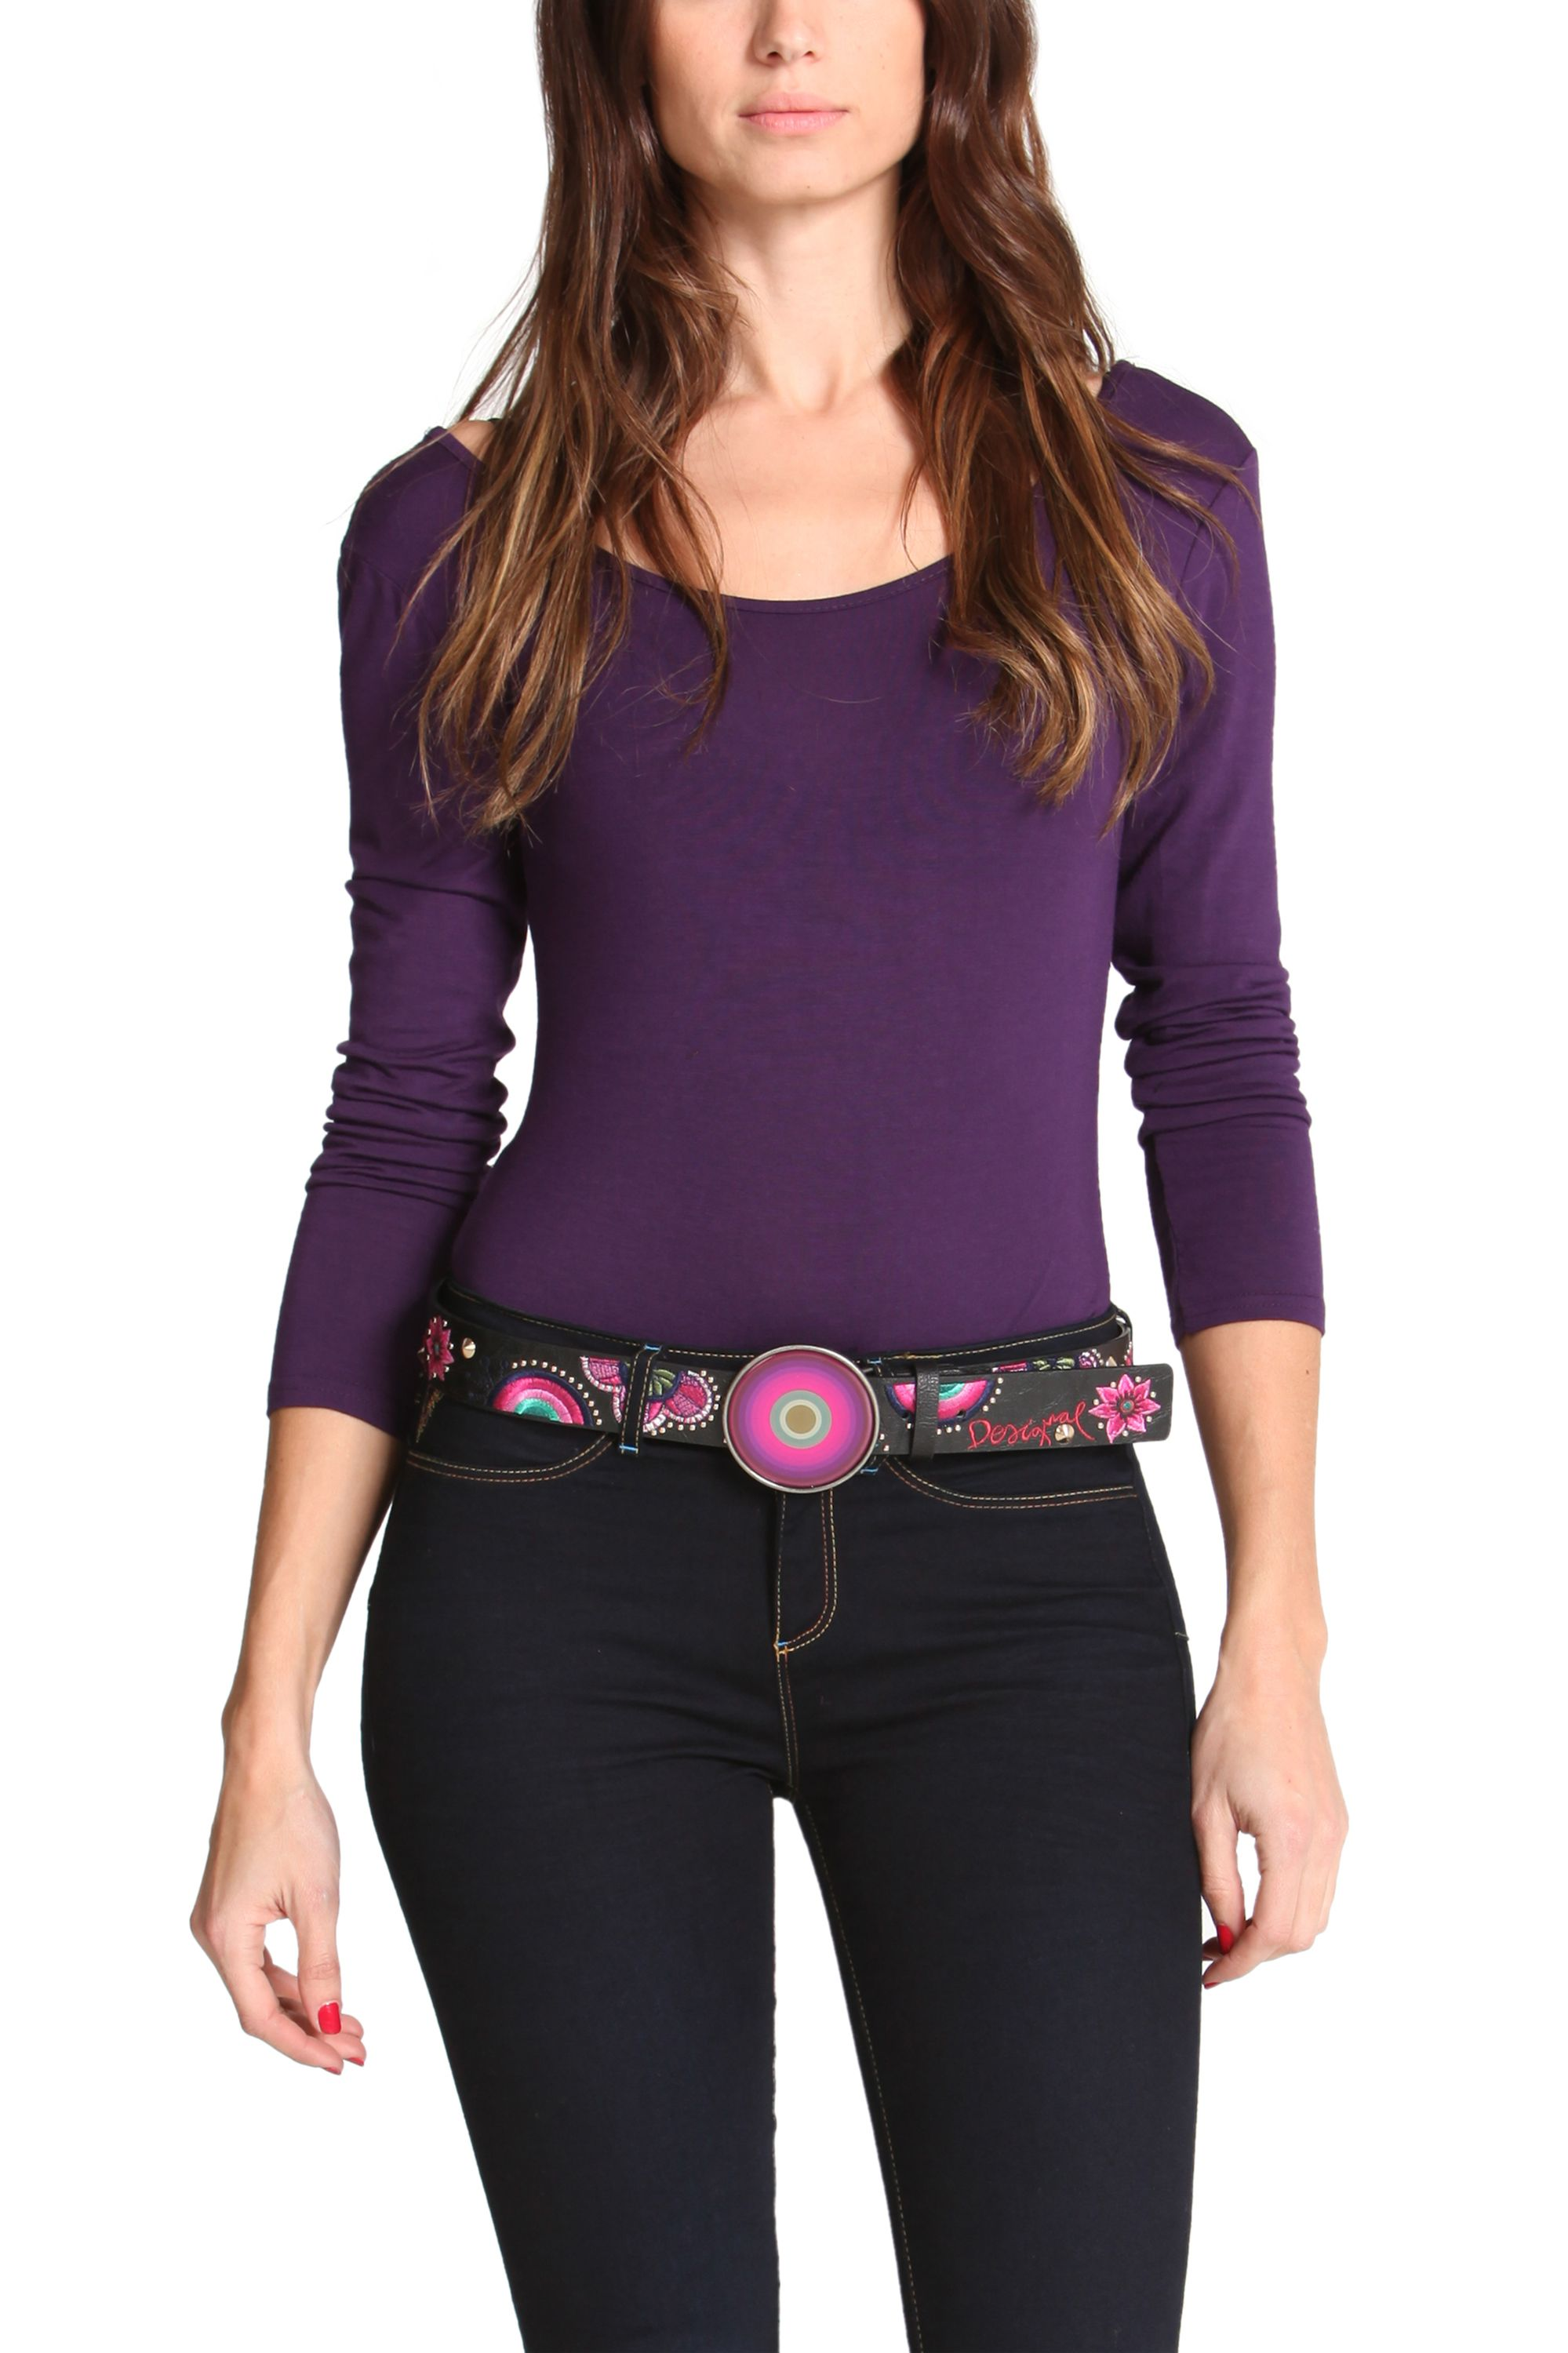 Floreado clasp metal belt